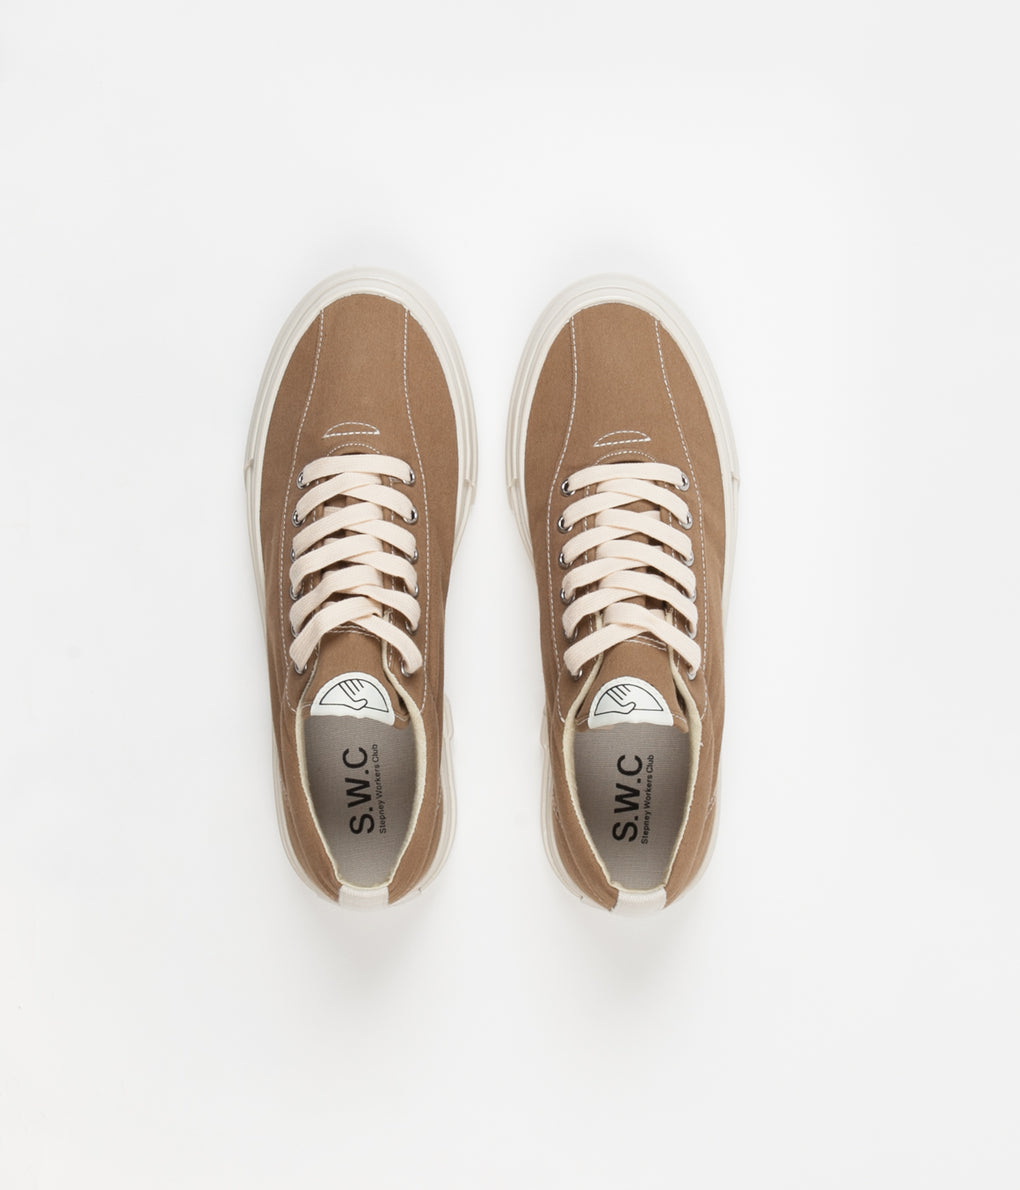 Stepney Workers Club Dellow Canvas Shoes - Desert